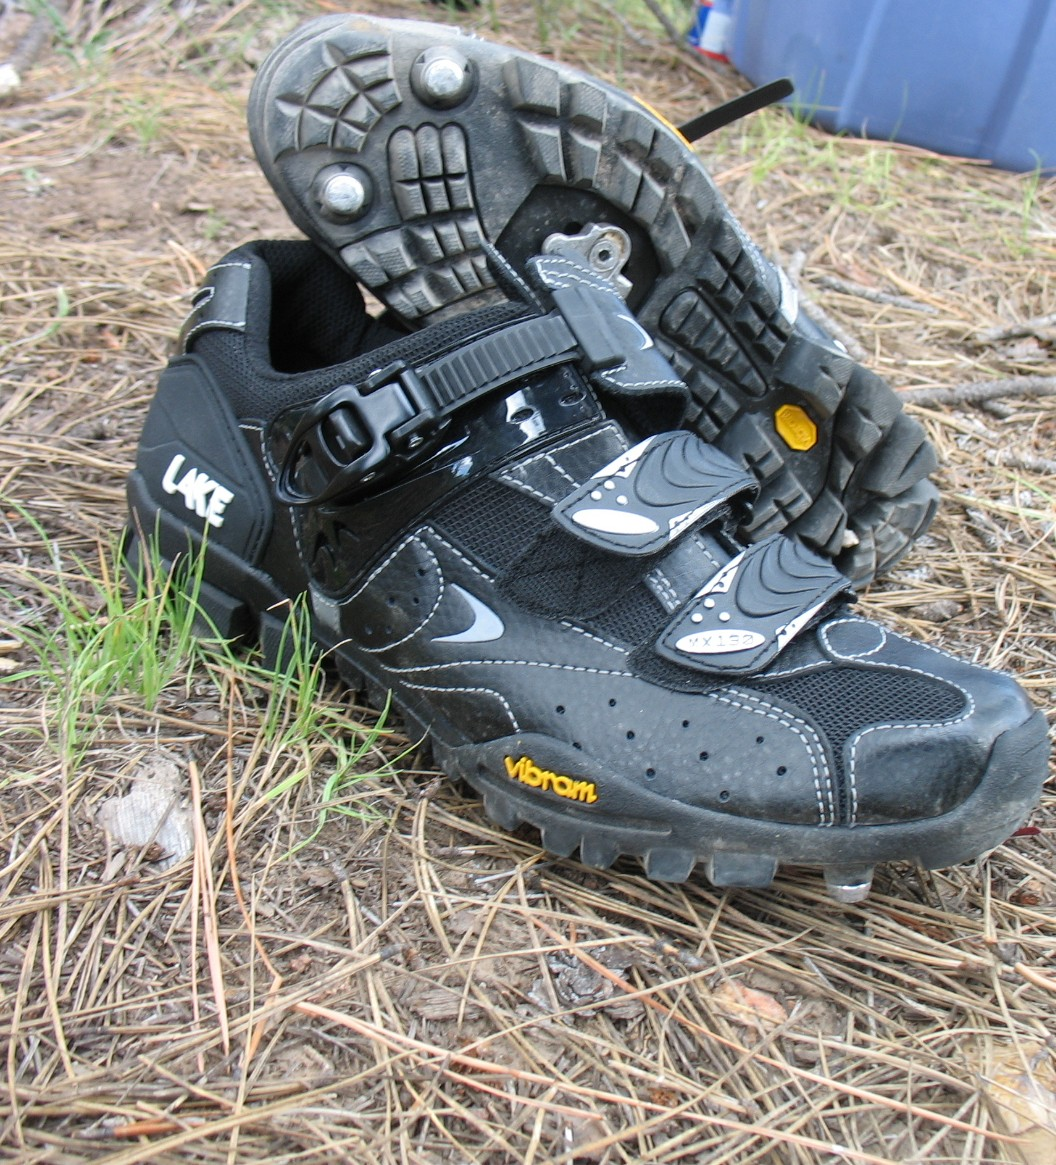 I just love my Lake MX190's.  Yes, that is a VIBRAM sole!  Cabin Loop rated.